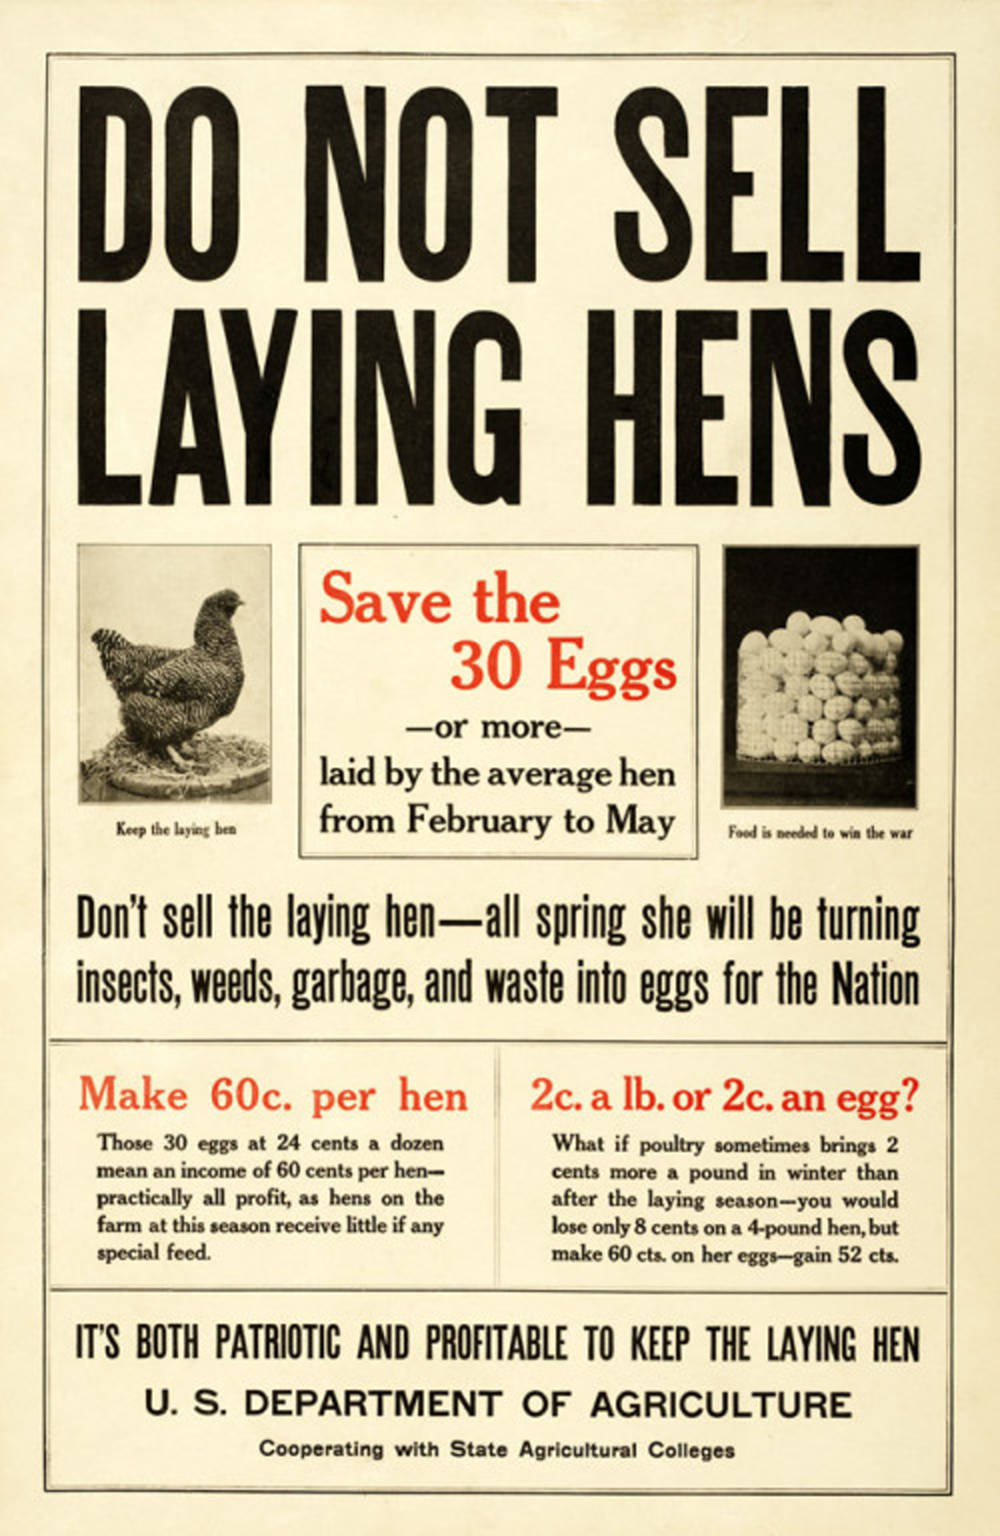 Do Not Sell Laying Hens, Department of Agriculture